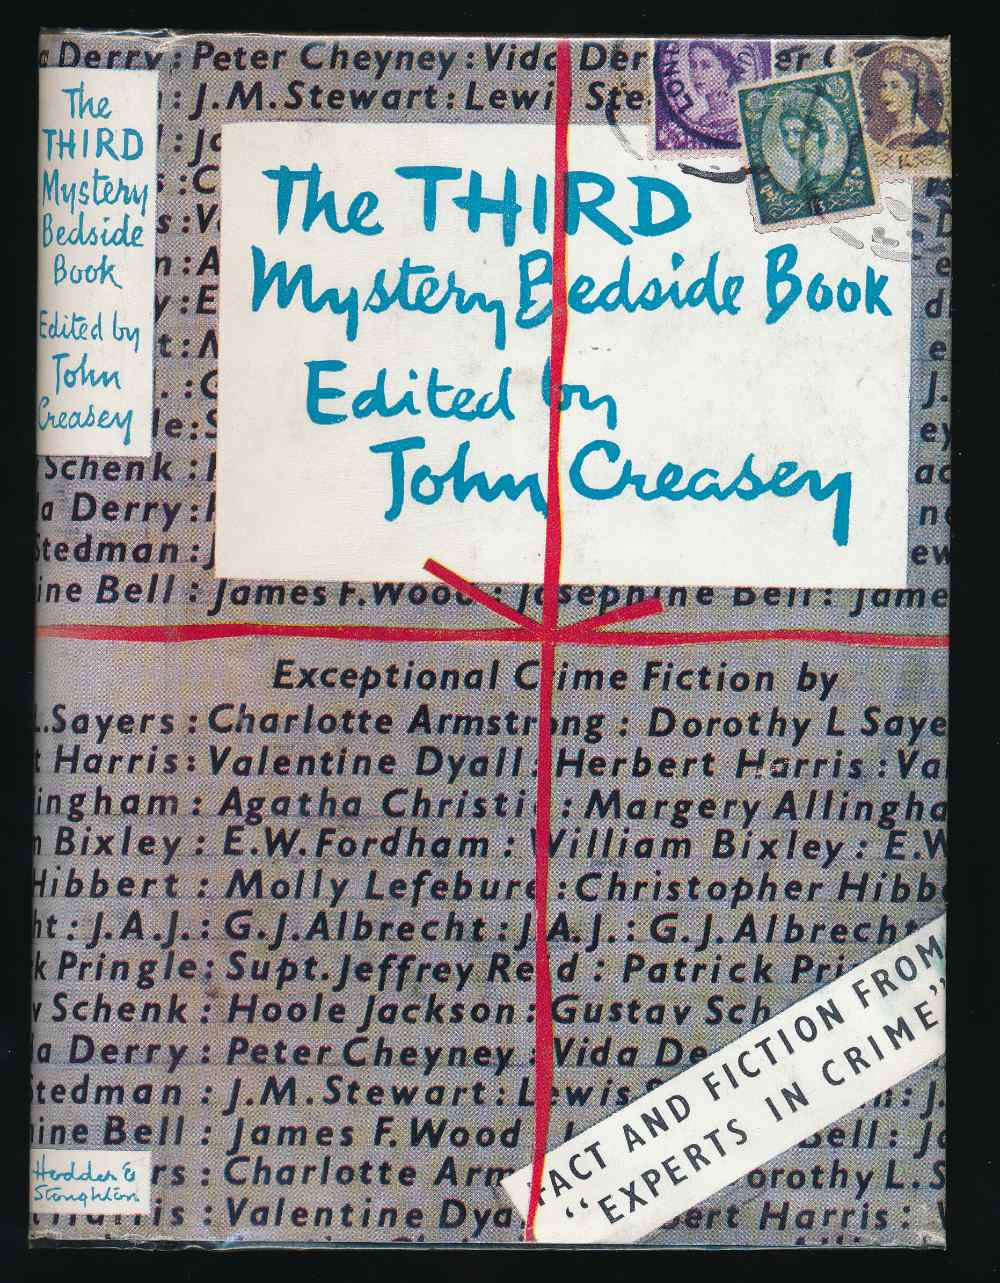 The third mystery bedside book